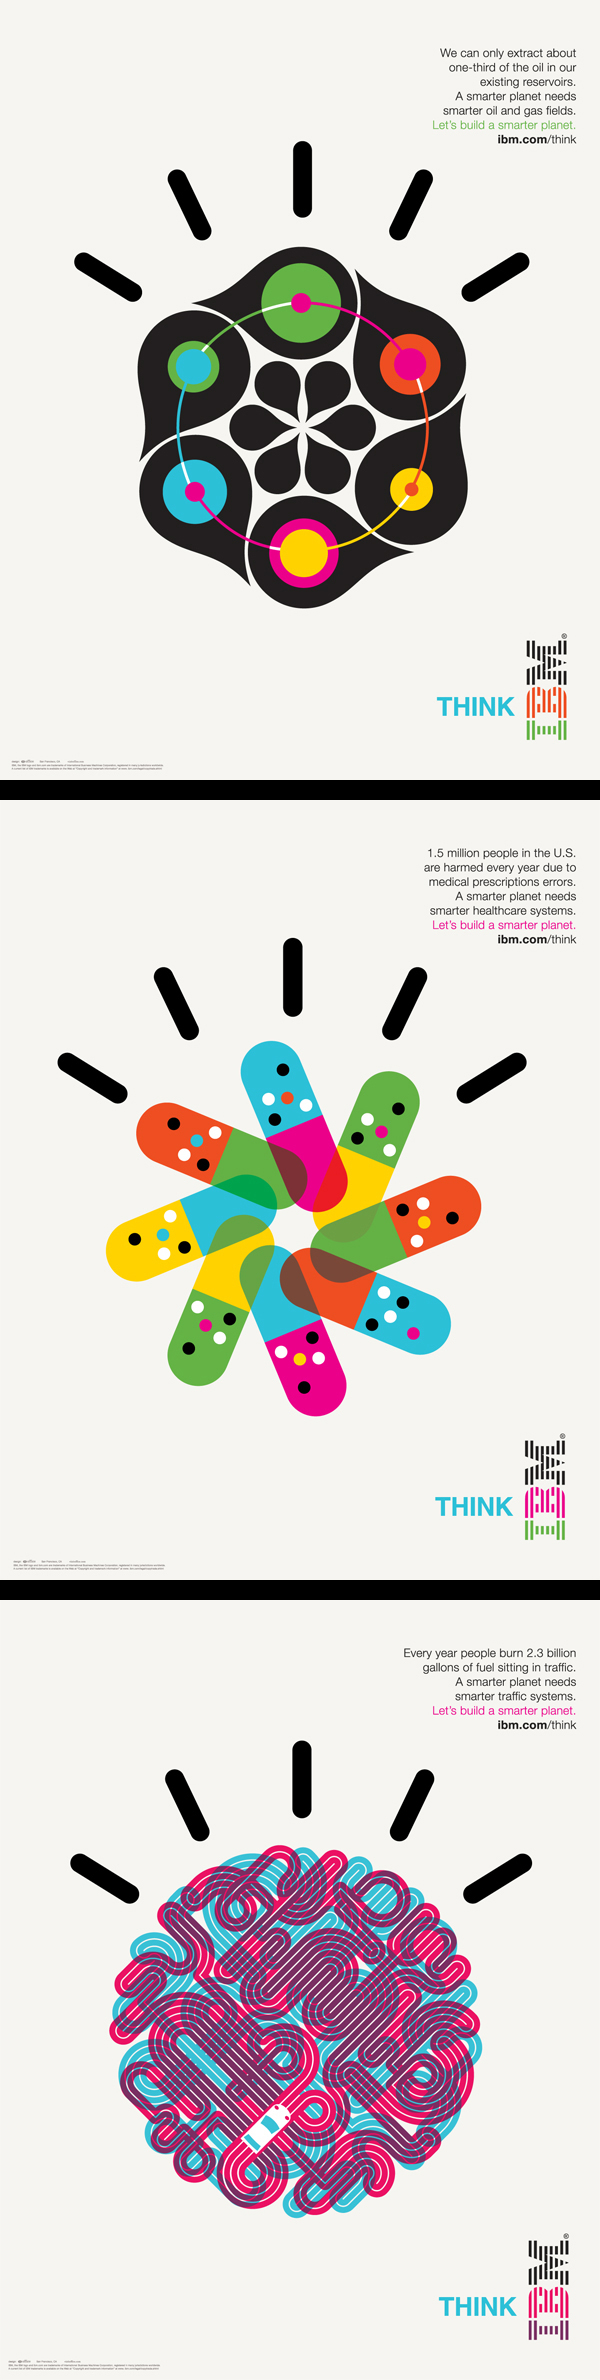 inspirations graphiques #13 Office | IBM Smarter Planet